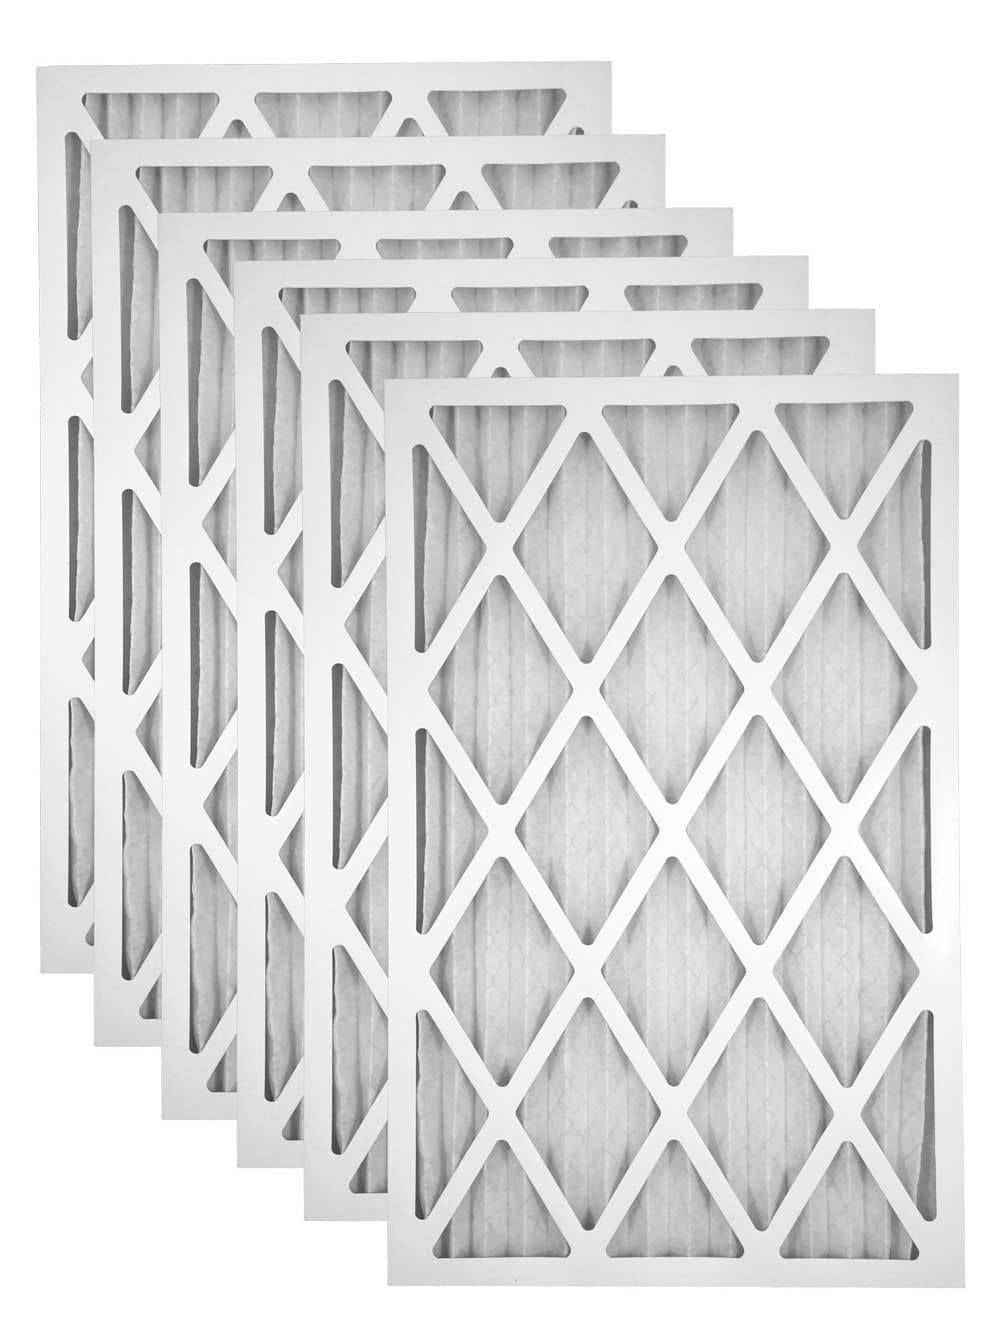 10x30x1 Merv 13 AC Furnace Filter - Case of 6